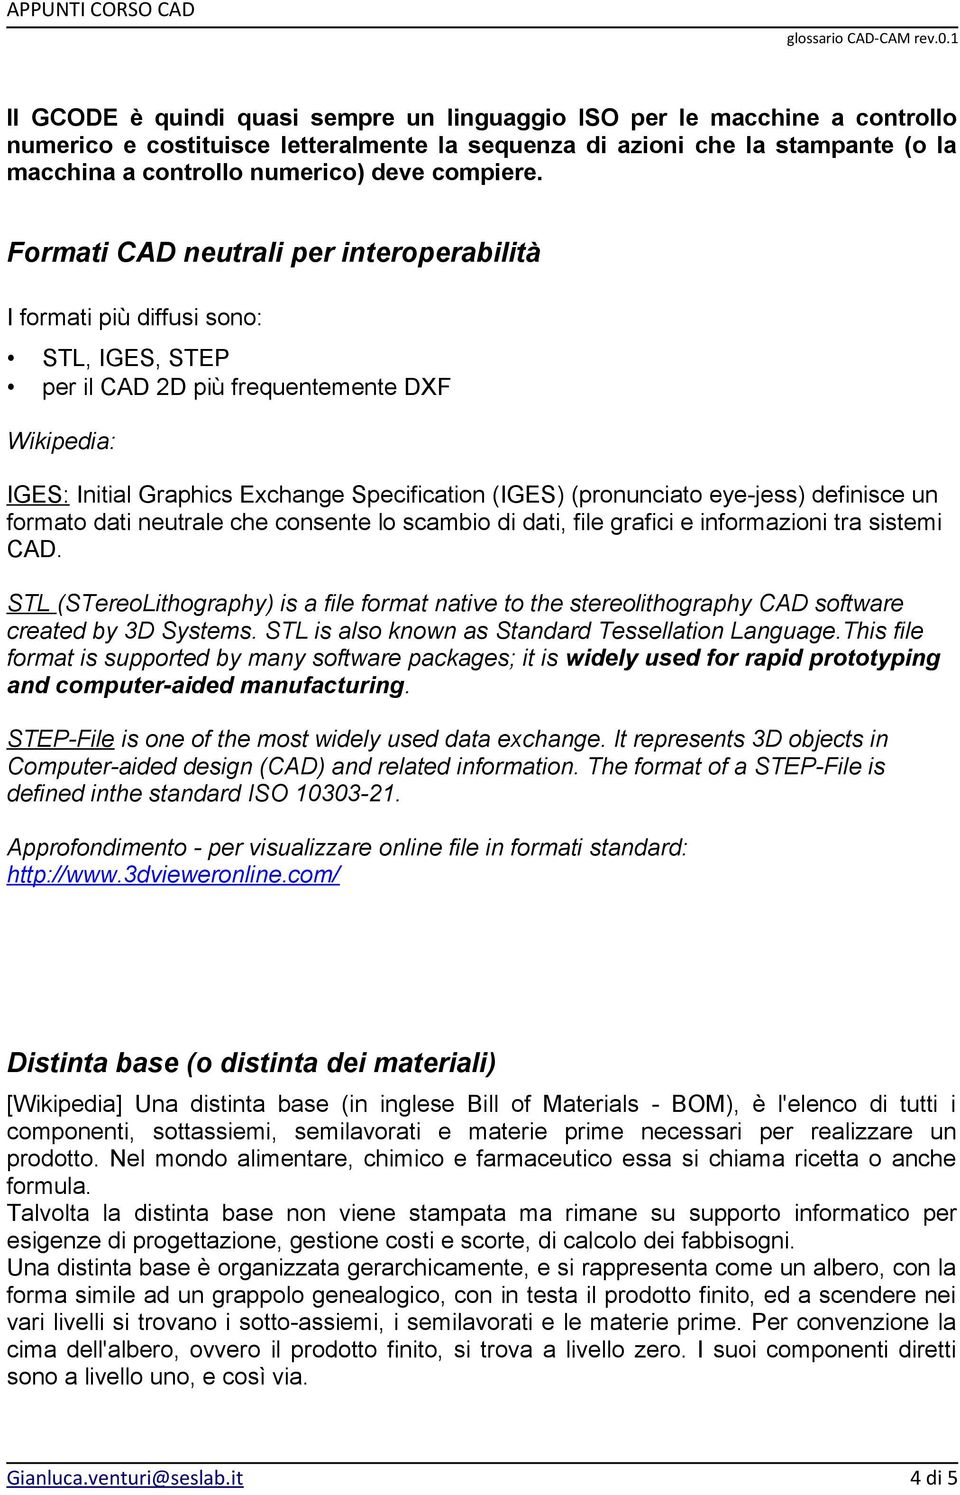 Formati CAD neutrali per interoperabilità I formati più diffusi sono: STL, IGES, STEP per il CAD 2D più frequentemente DXF Wikipedia: IGES: Initial Graphics Exchange Specification (IGES) (pronunciato